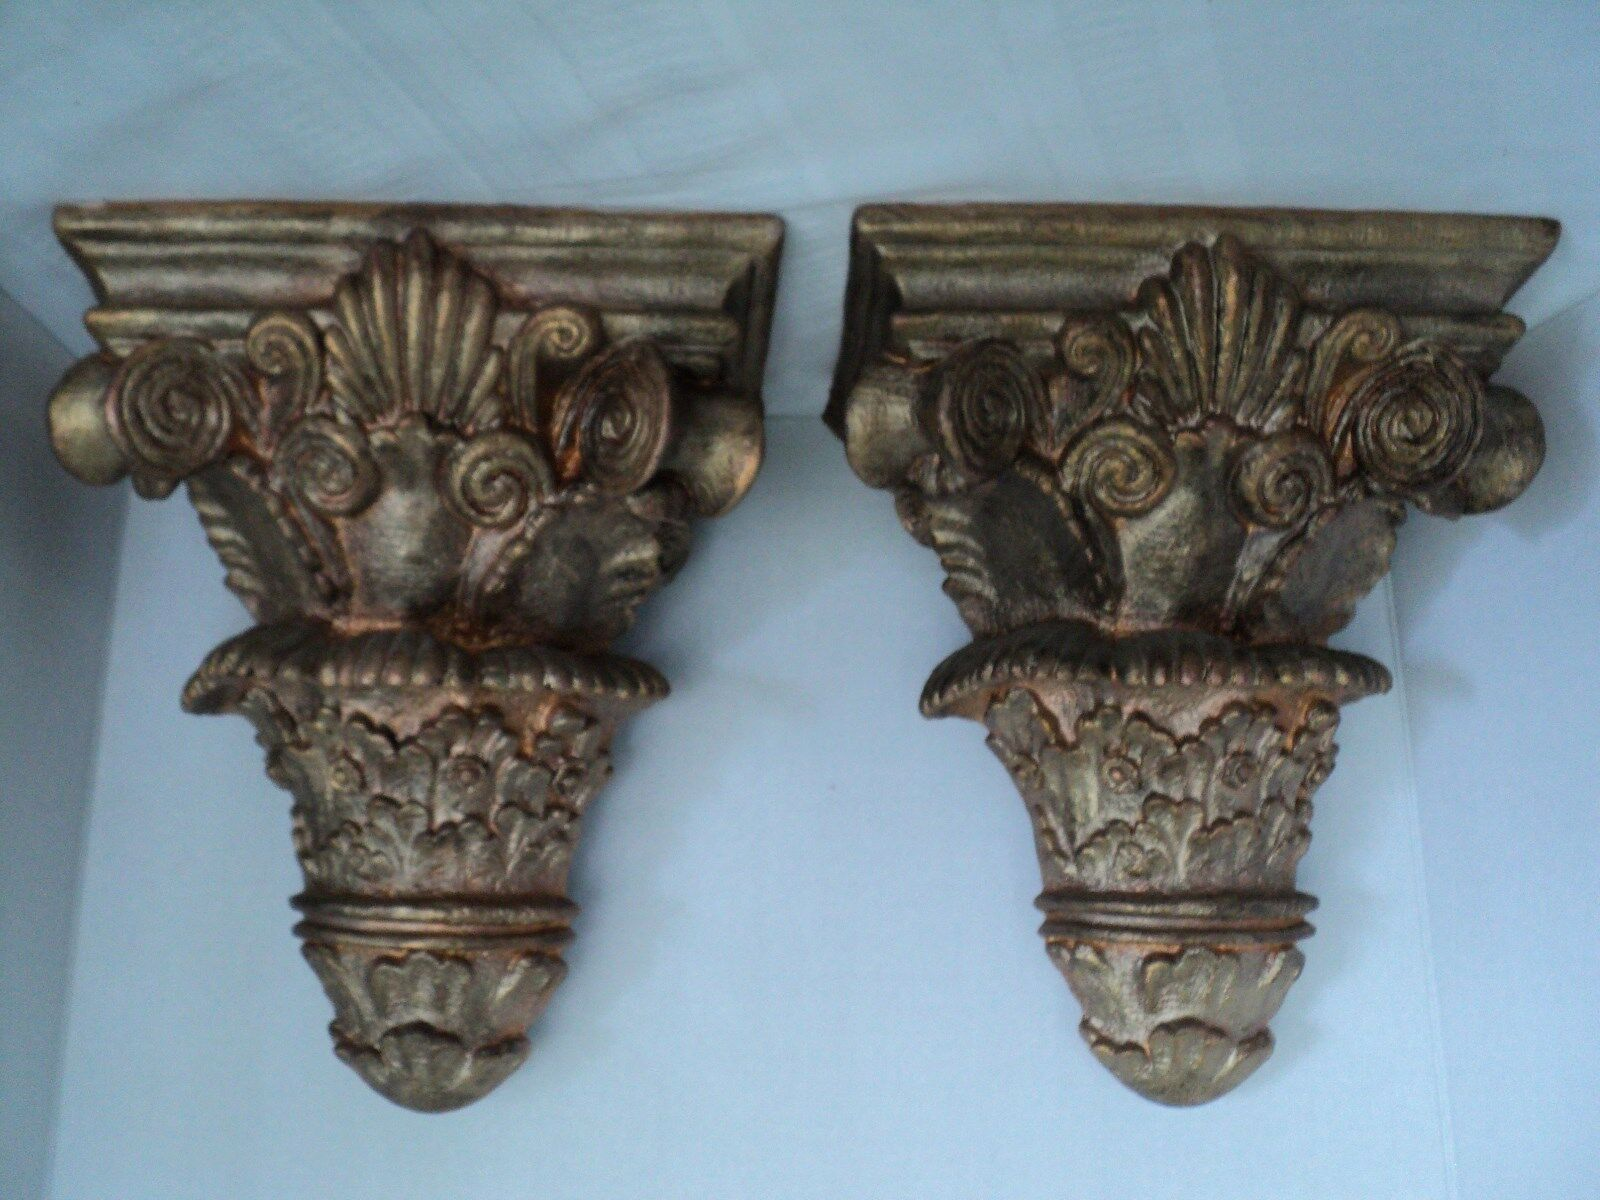 Regal Pair of Large Resin Wall Corbel Shelves Sconce Brackets - Gold/Bronze AUD 23.76 ...